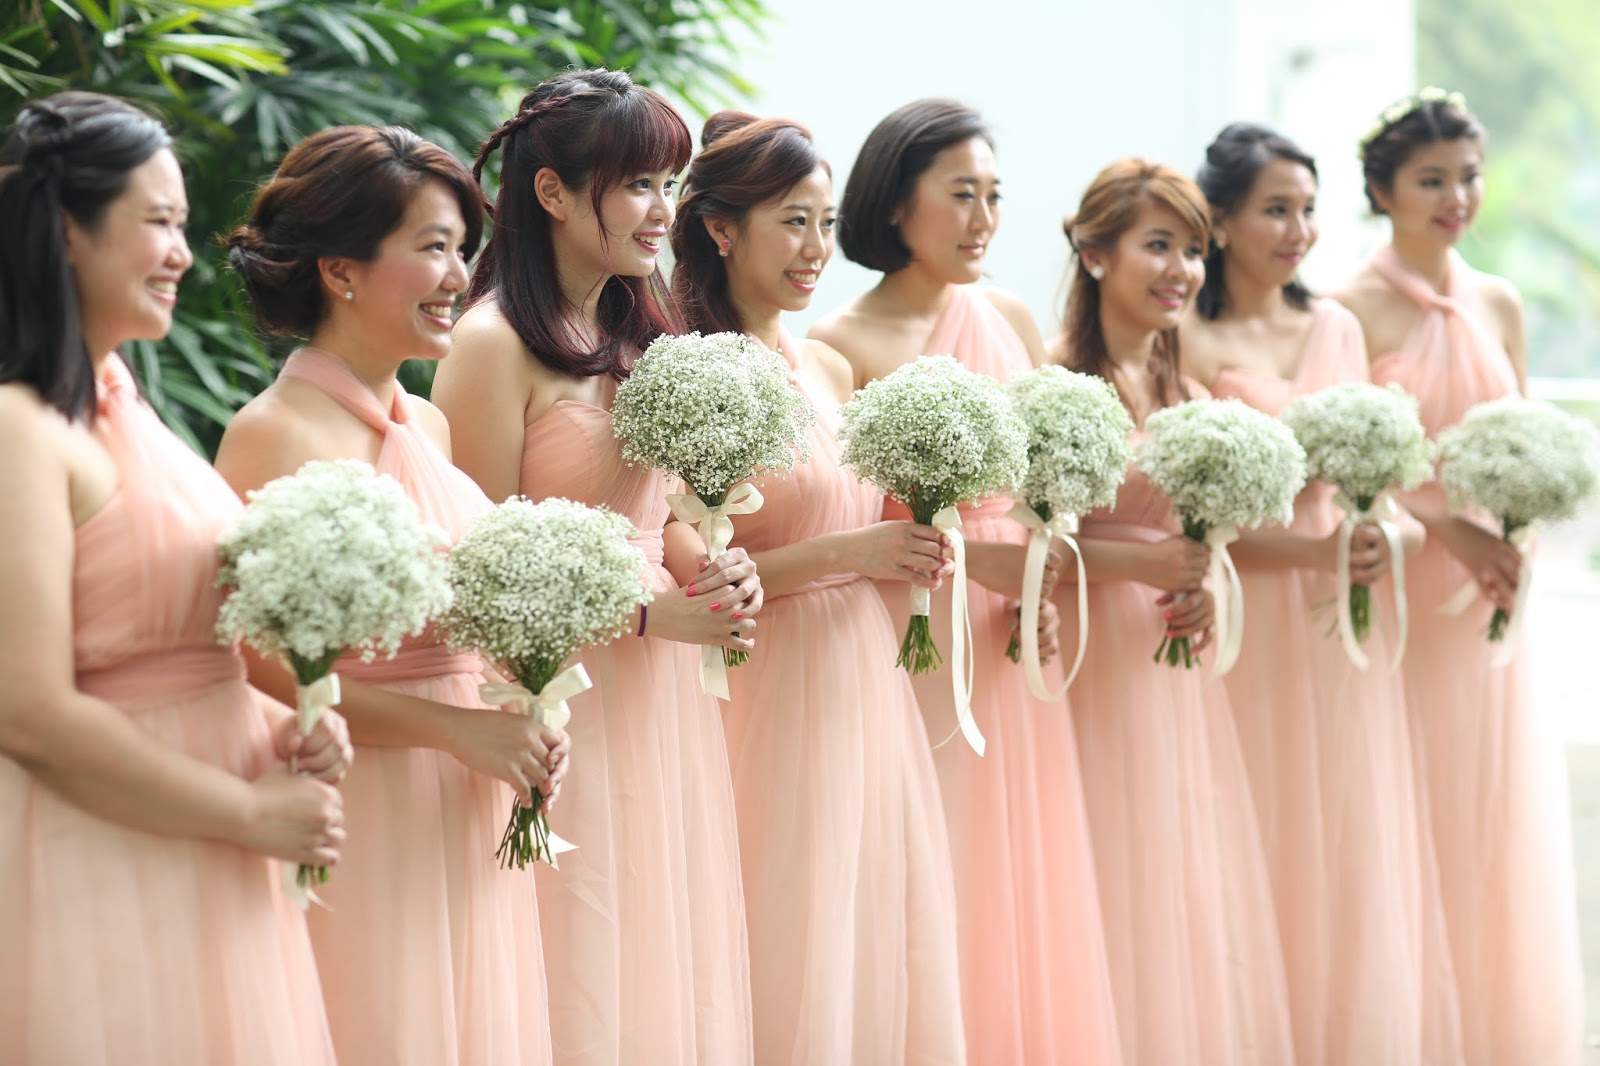 Bridesmaid Dresses Ideas